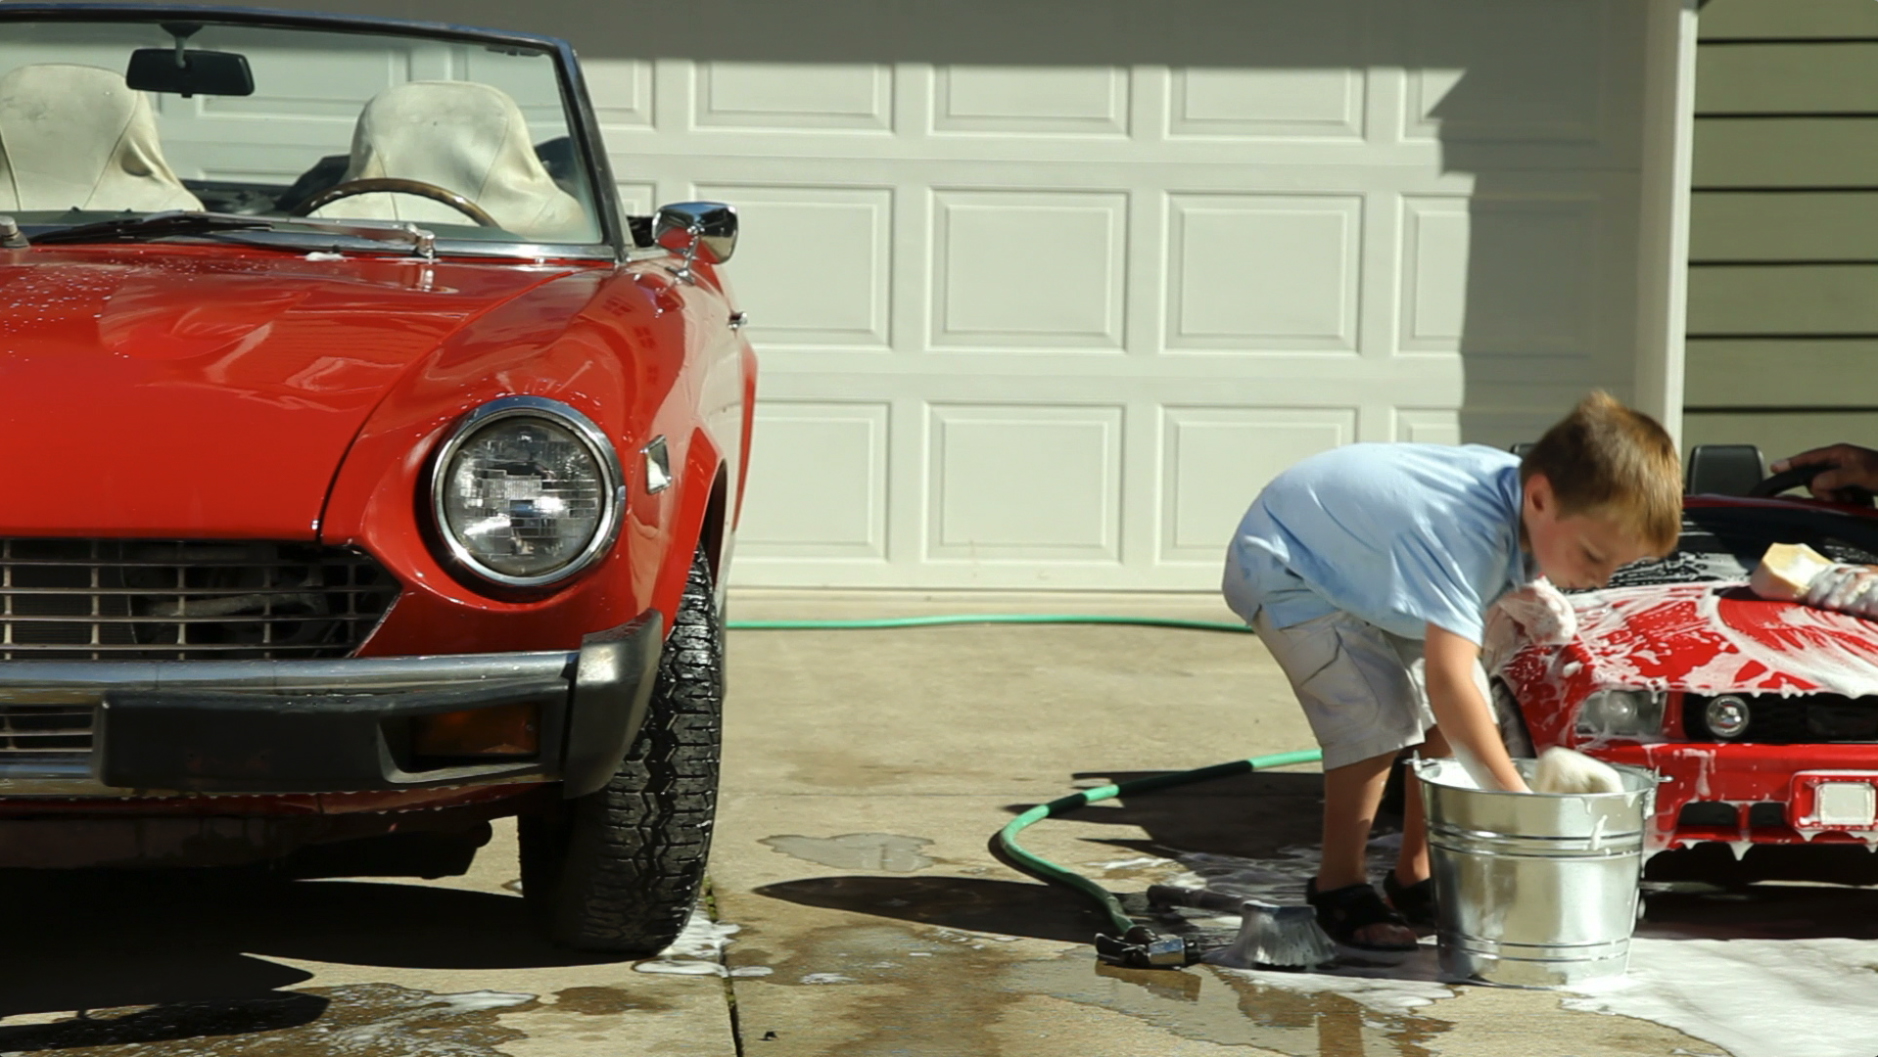 grandpa-grandson-washing-red-convertible-together---amana-insurance-agency